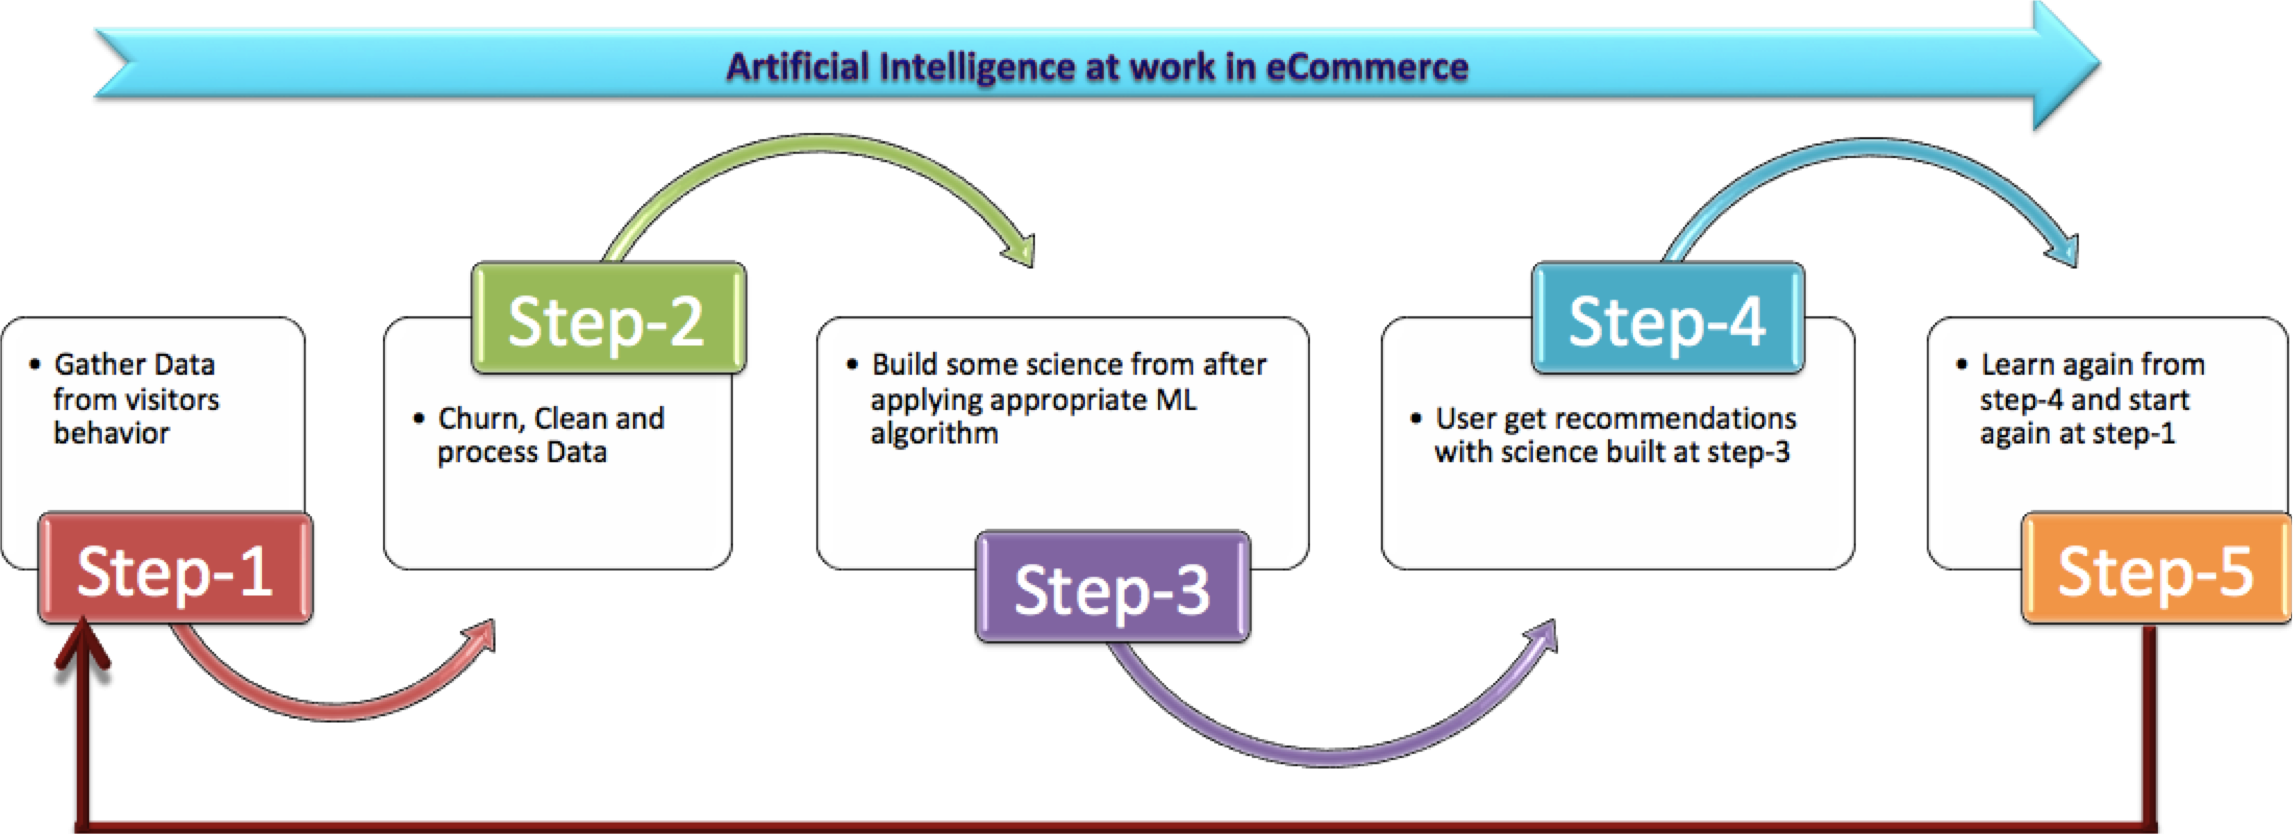 Epicenter of eCommerce – Artificial Intelligence